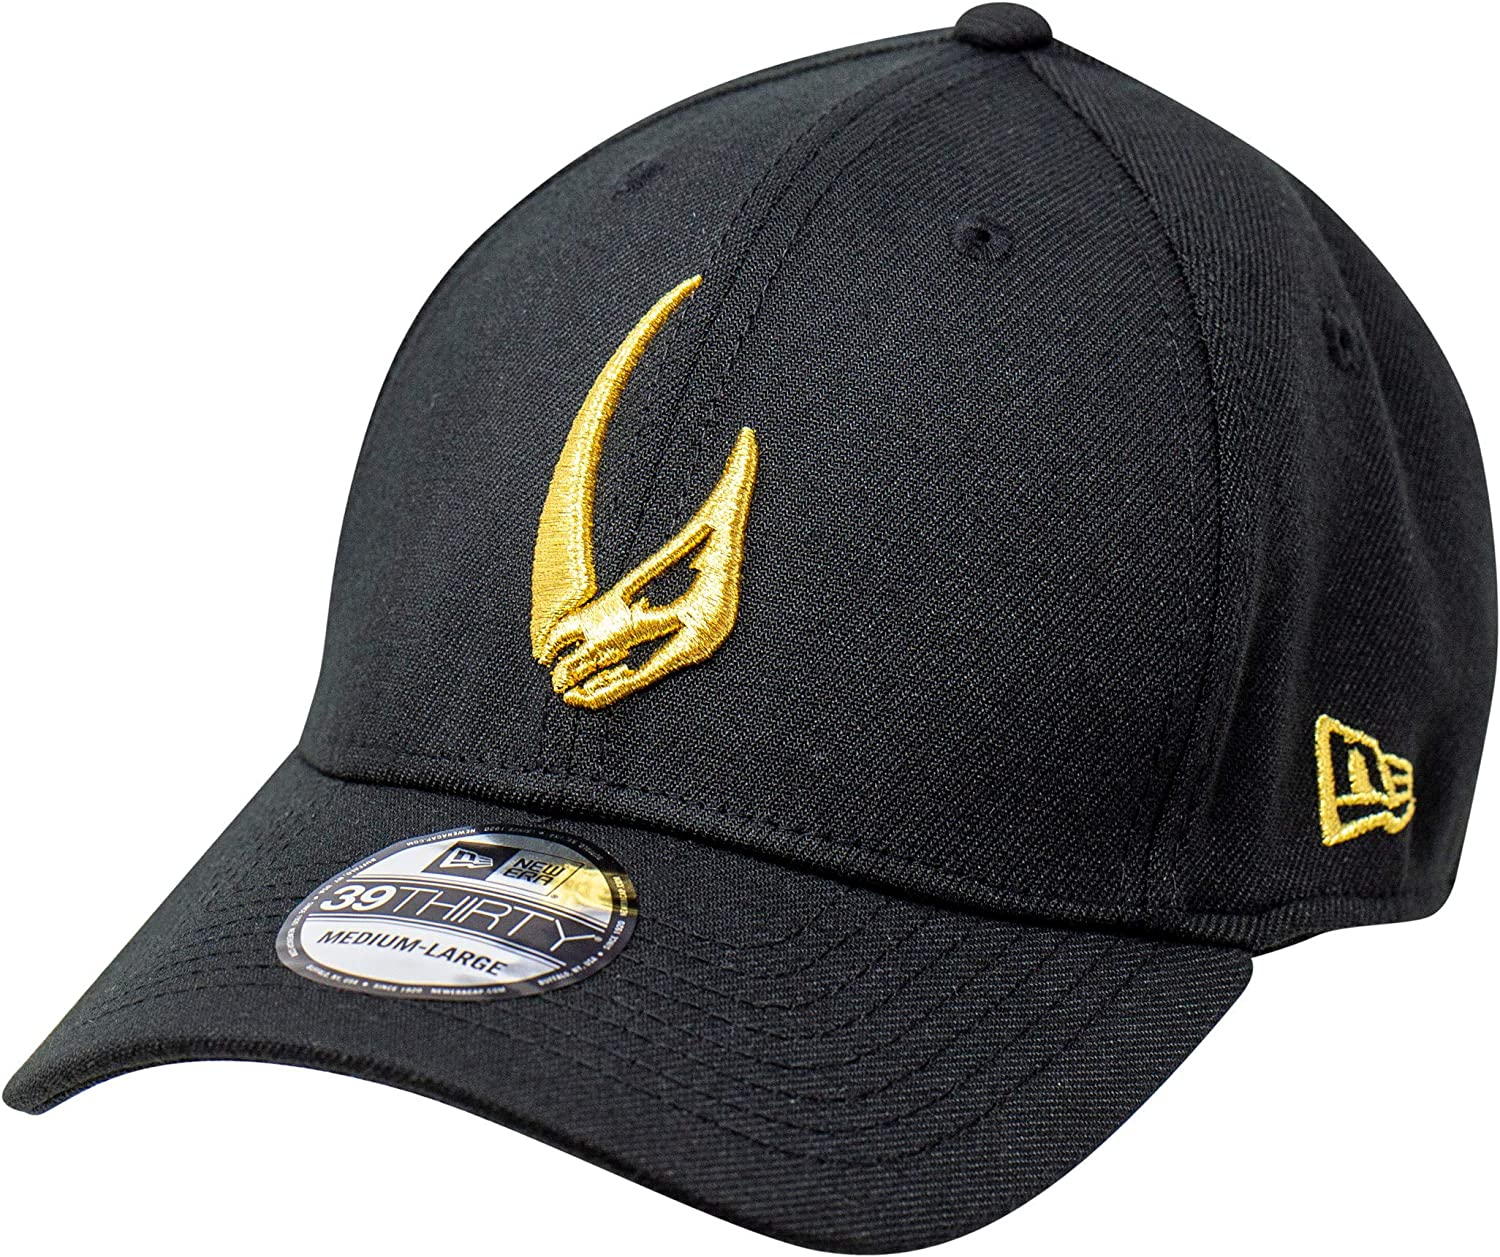 The Mandalorian Star Wars The Mandalorian Mudhorn Sigil Fitted Hat This is the Way Boba Fett Hat